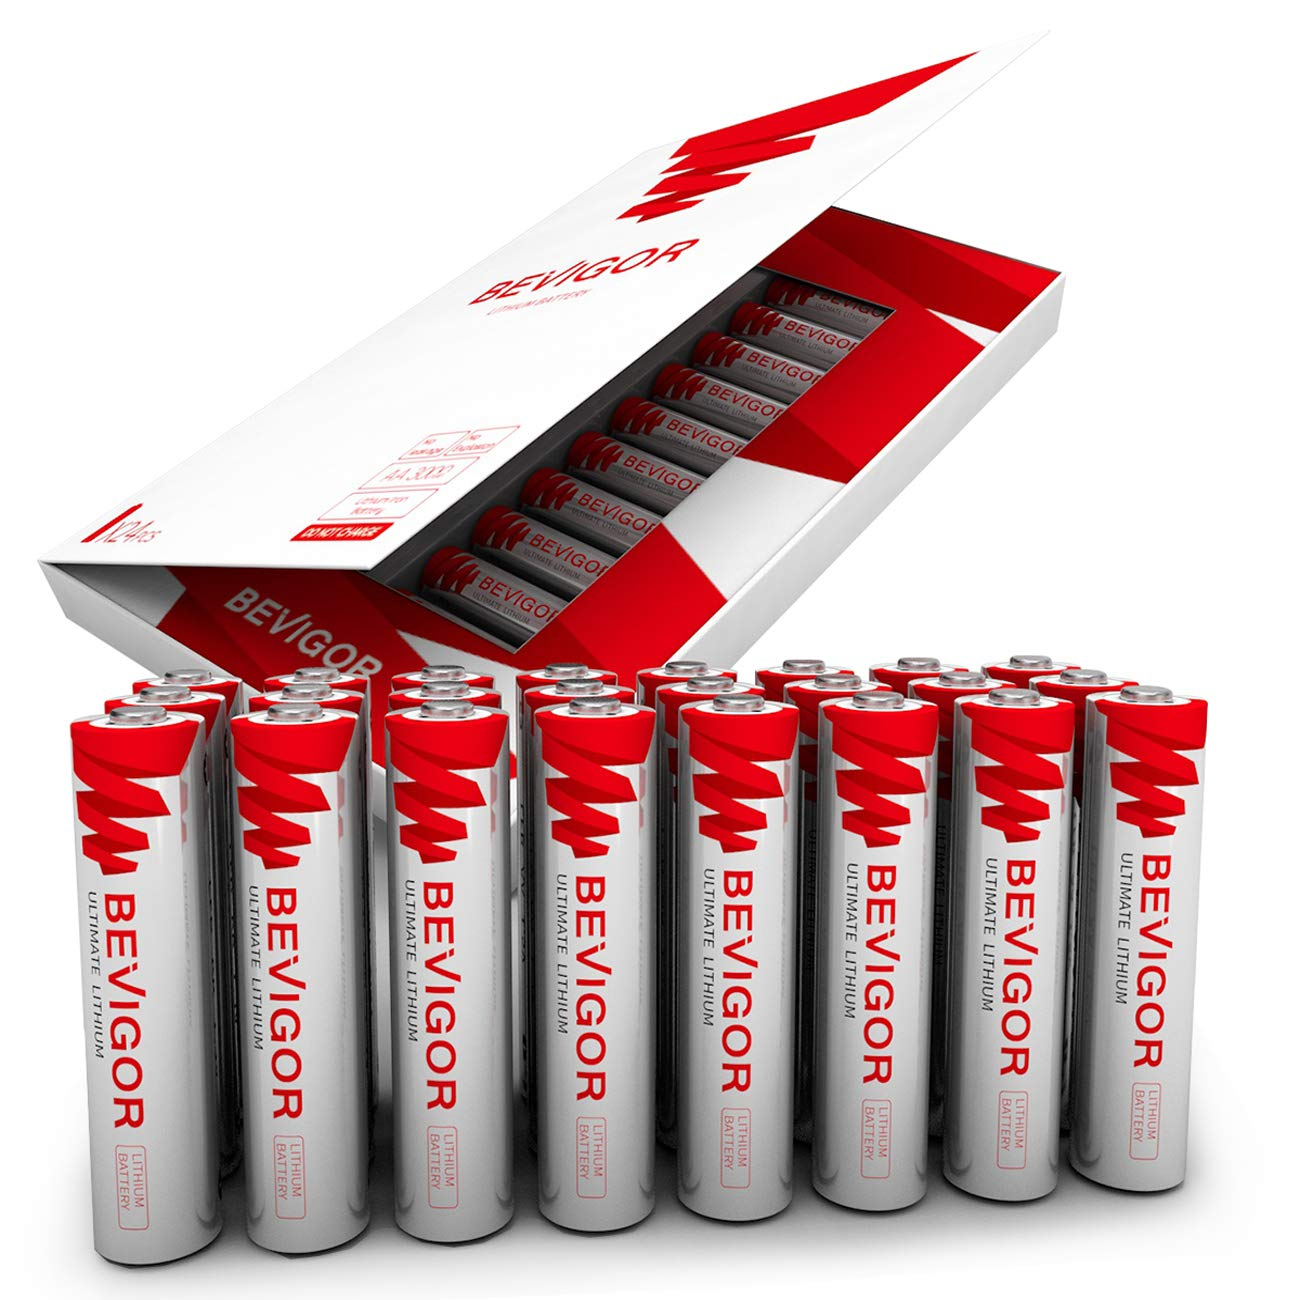 Bevigor AAA Lithium Batteries, 24Pack Ultimate Lithium Triple A Batteries, 1.5V 1100mAh Longer Lasting AAA Batteries for Flashlight, Toys, Remote Control, Non-Rechargeable